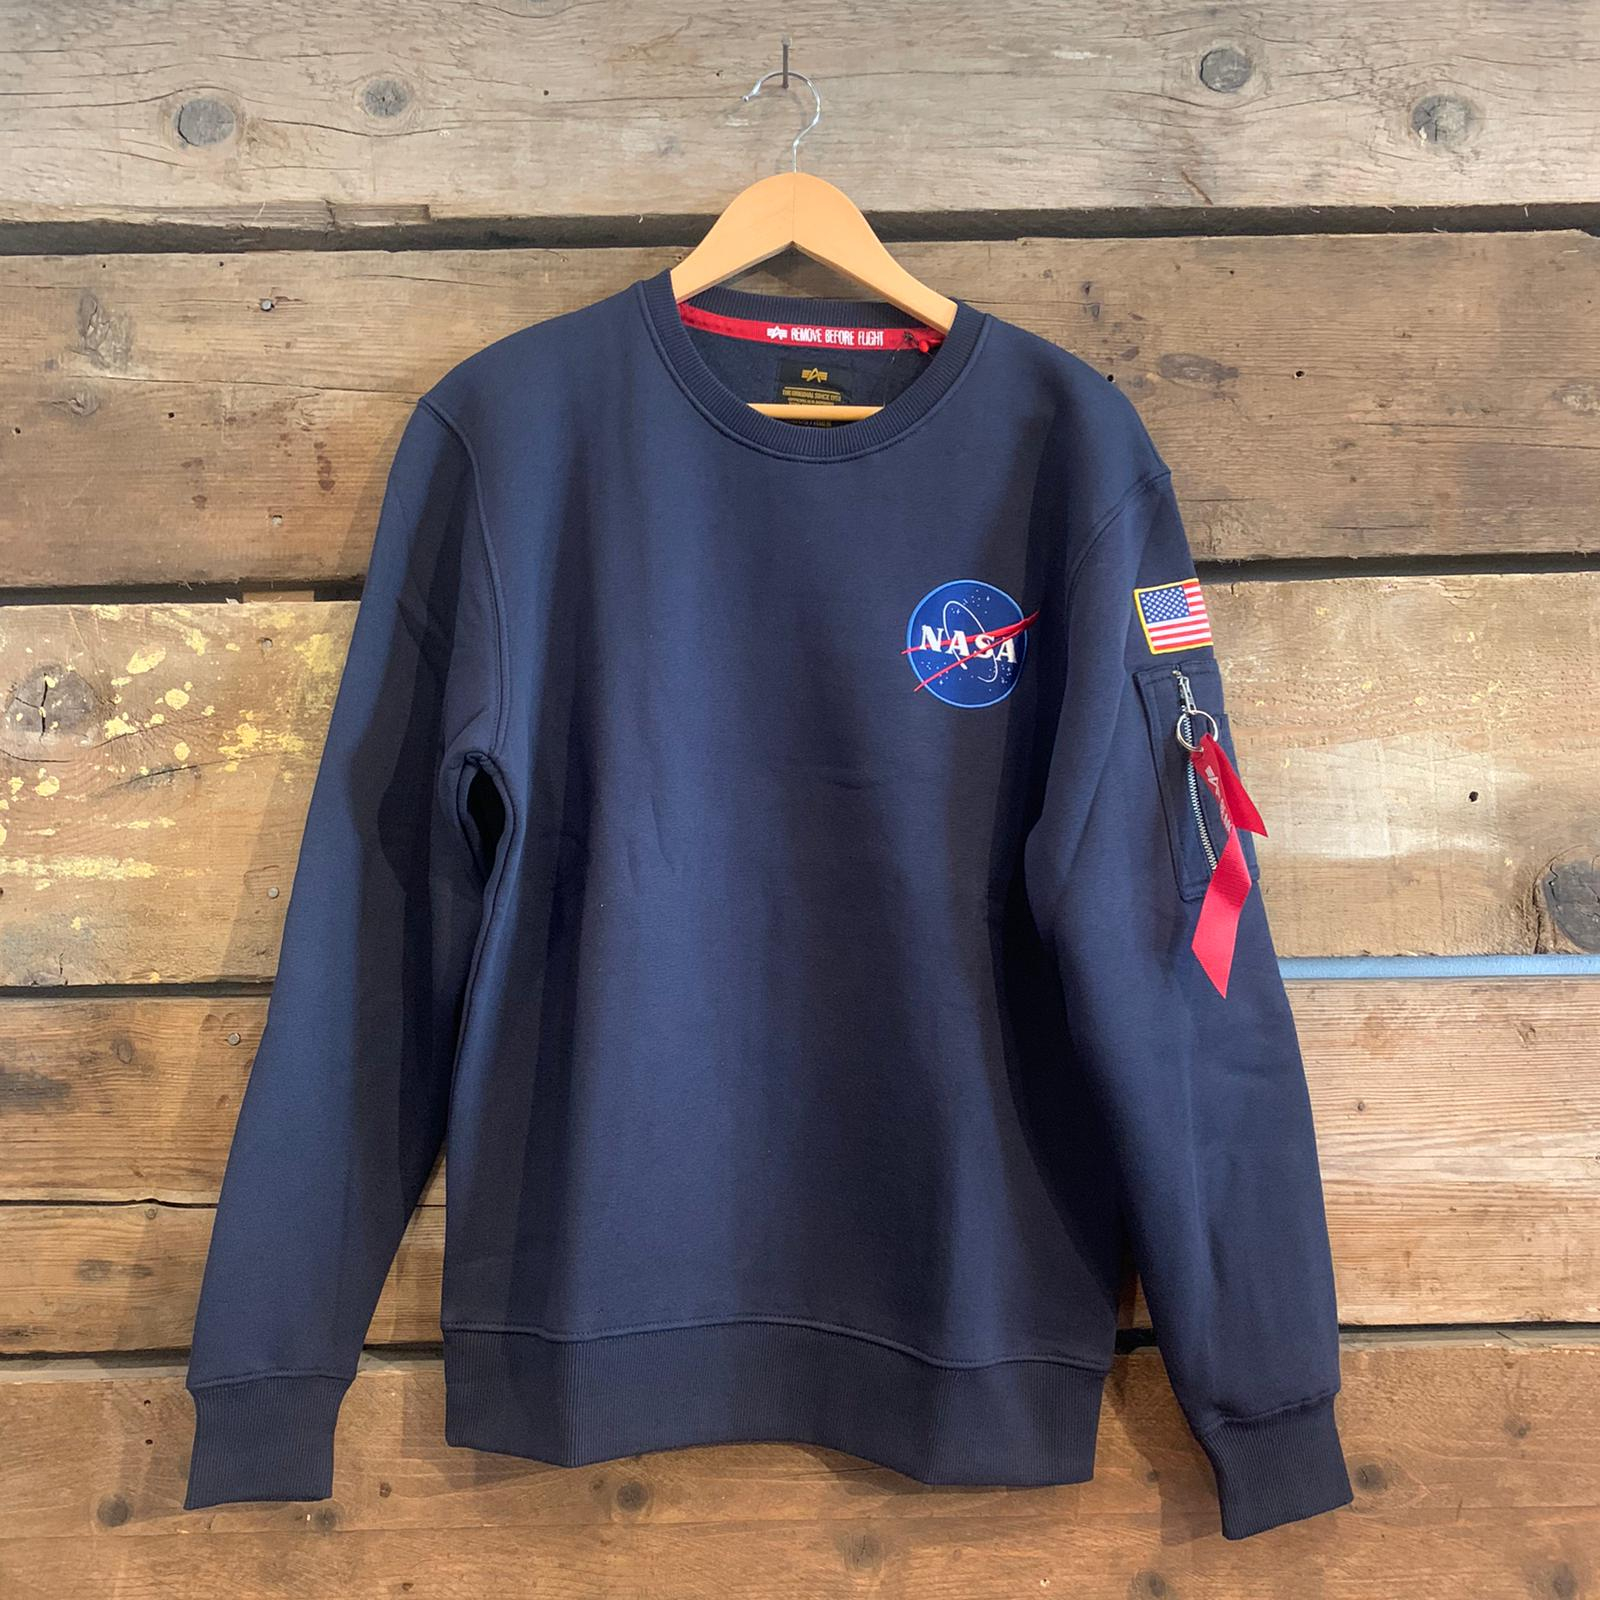 Felpa Alpha Industries Nasa a Girocollo Blu Navy